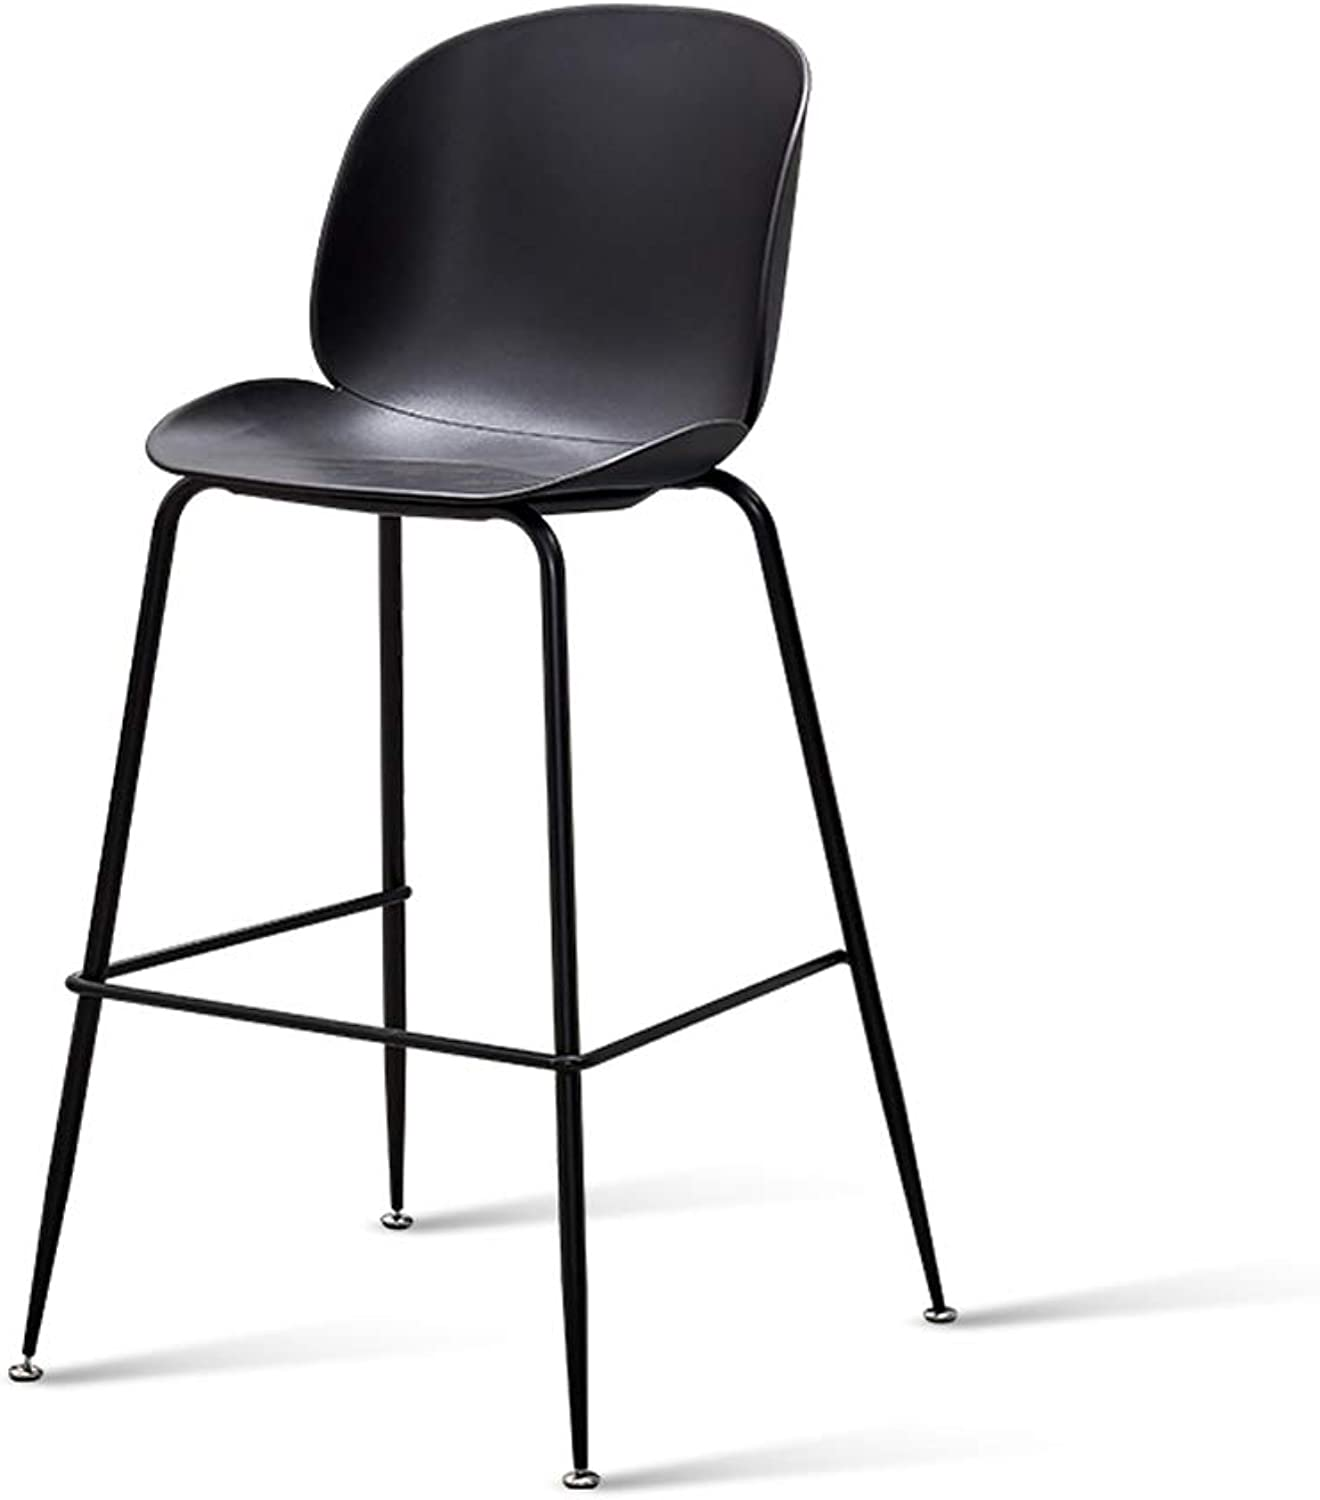 Simple Front Desk Bar Nordic Bar High Bar Restaurant Creative Fashion Bar Chair Home Multicolor Sitting High 72 (color   Black)